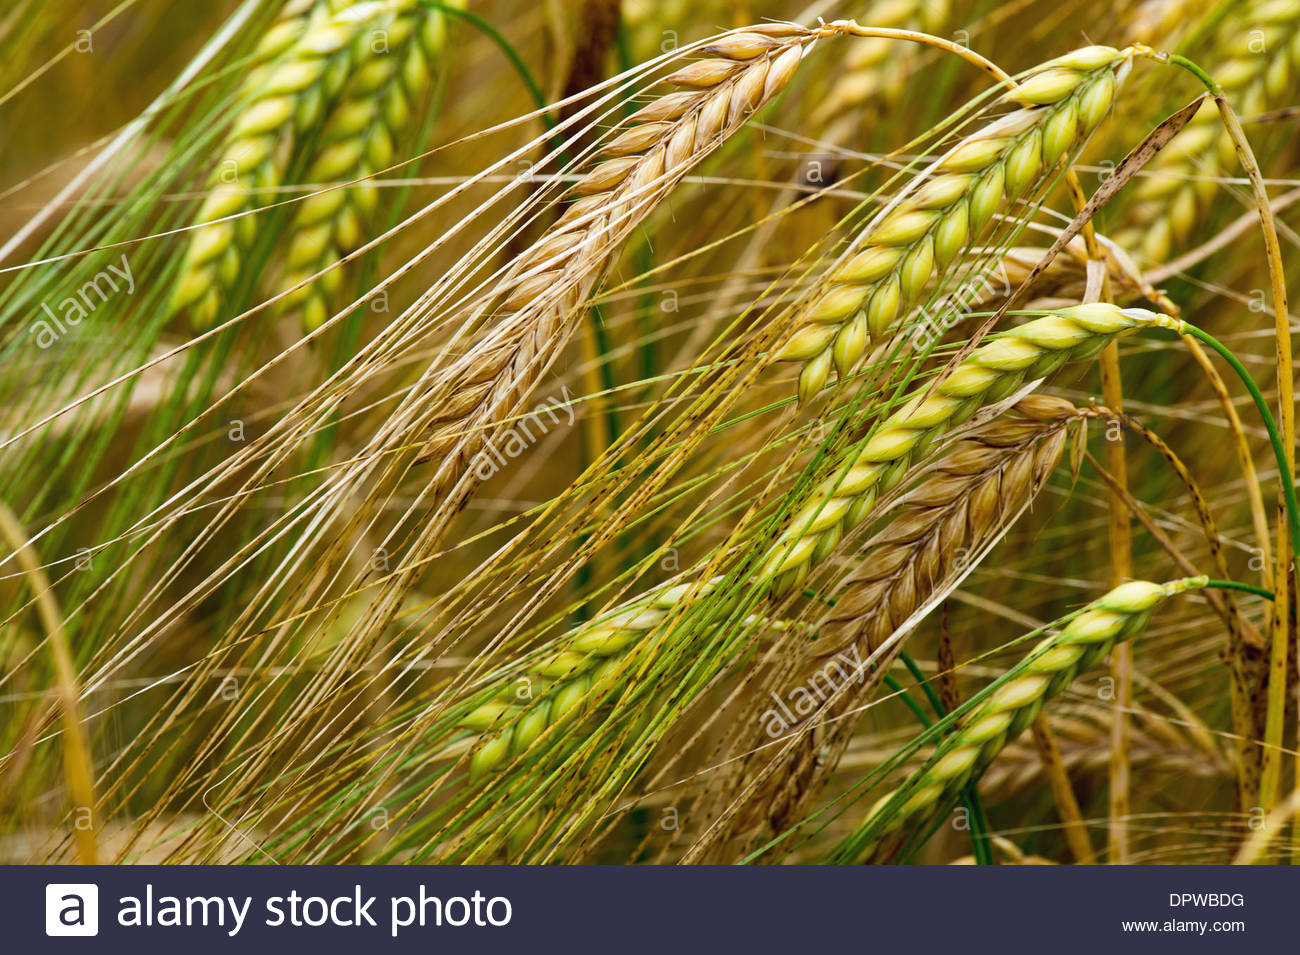 Field with ears of corn - Stock Image